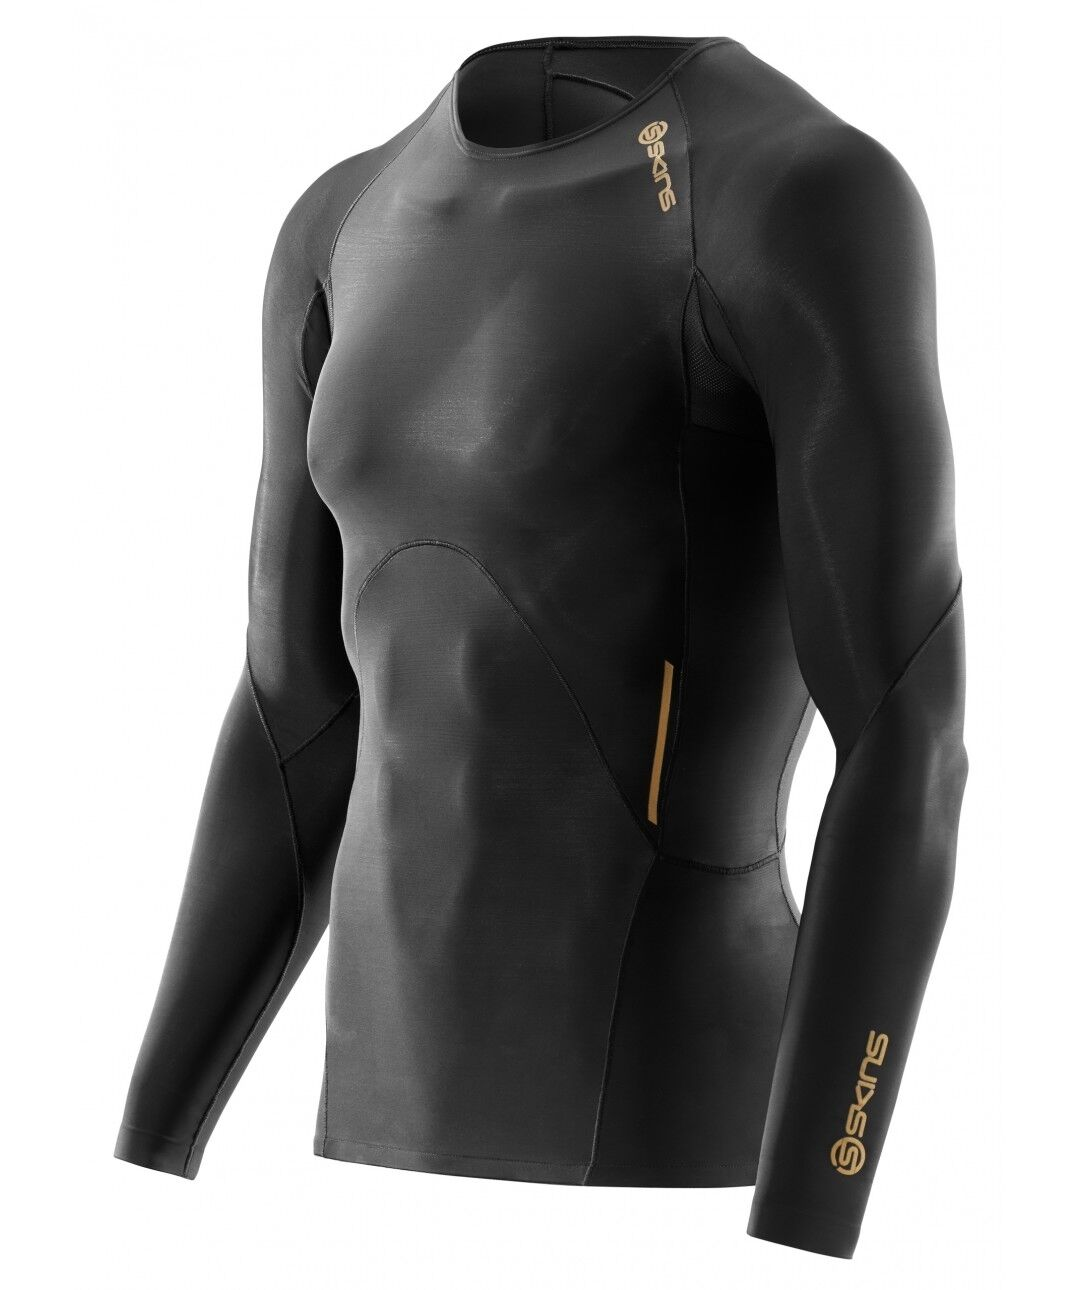 NEW  Skins Compression A400  Herren Long Sleeve Top (Gold) + FREE AUS DELIVERY